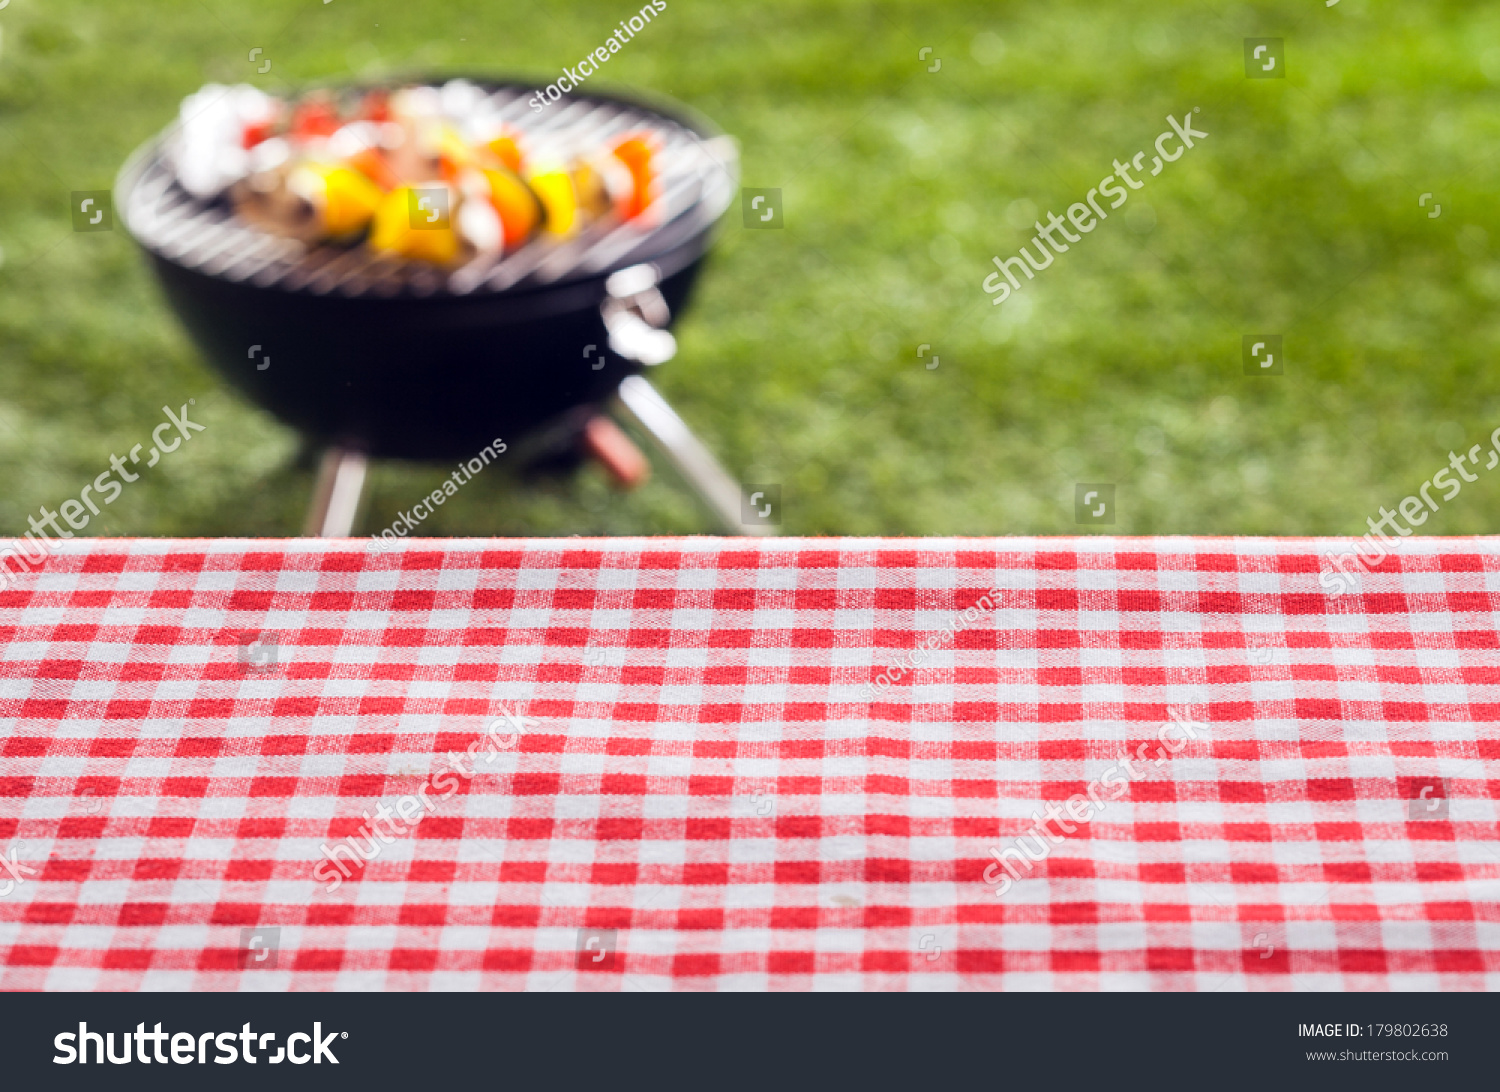 Picnic Table Background Empty Picnic Table Background Covered Fresh Stock Photo 179802638